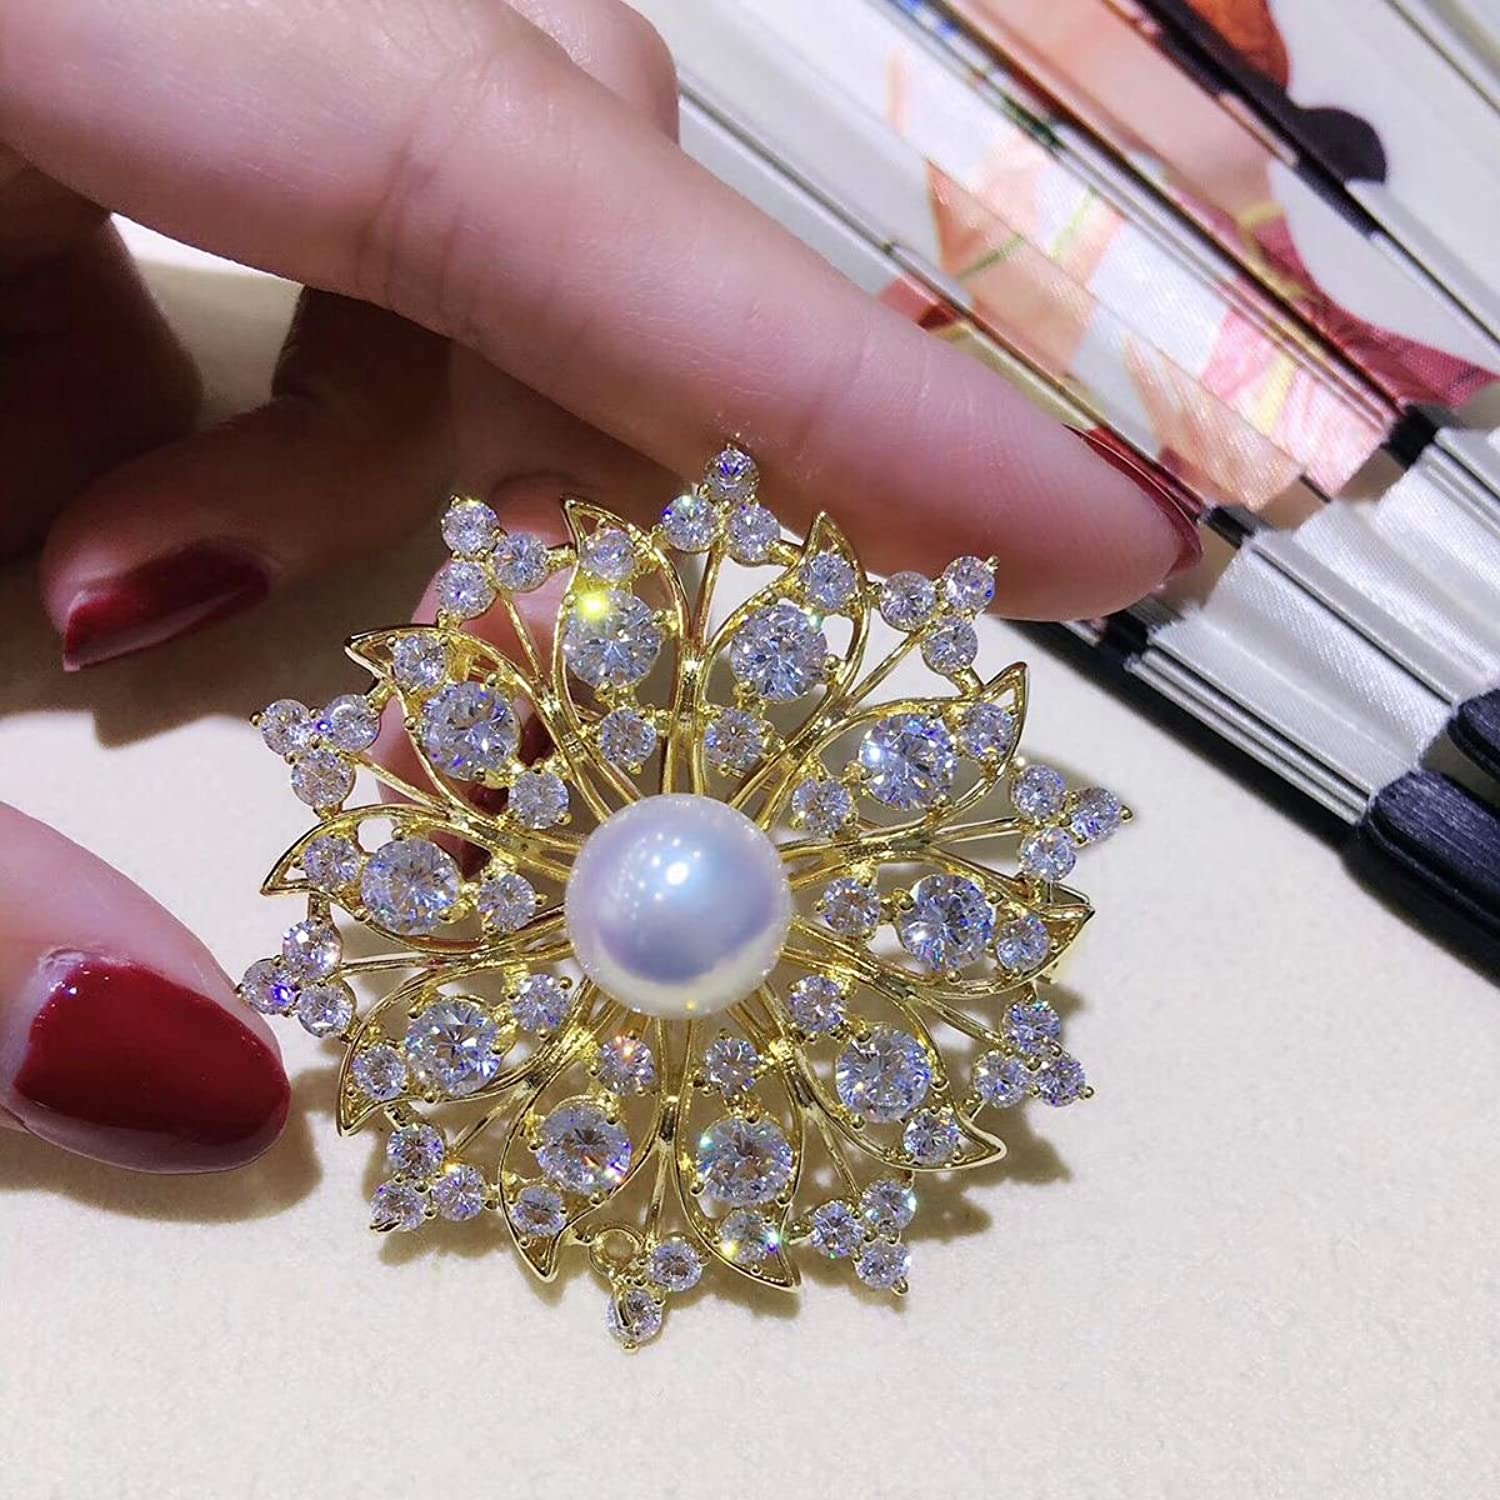 Freshwater Pearl Corsage Brooch pin Badge pin Fashion Zircon Micro Pave Shiny Garland Glare Flawless Round Bread